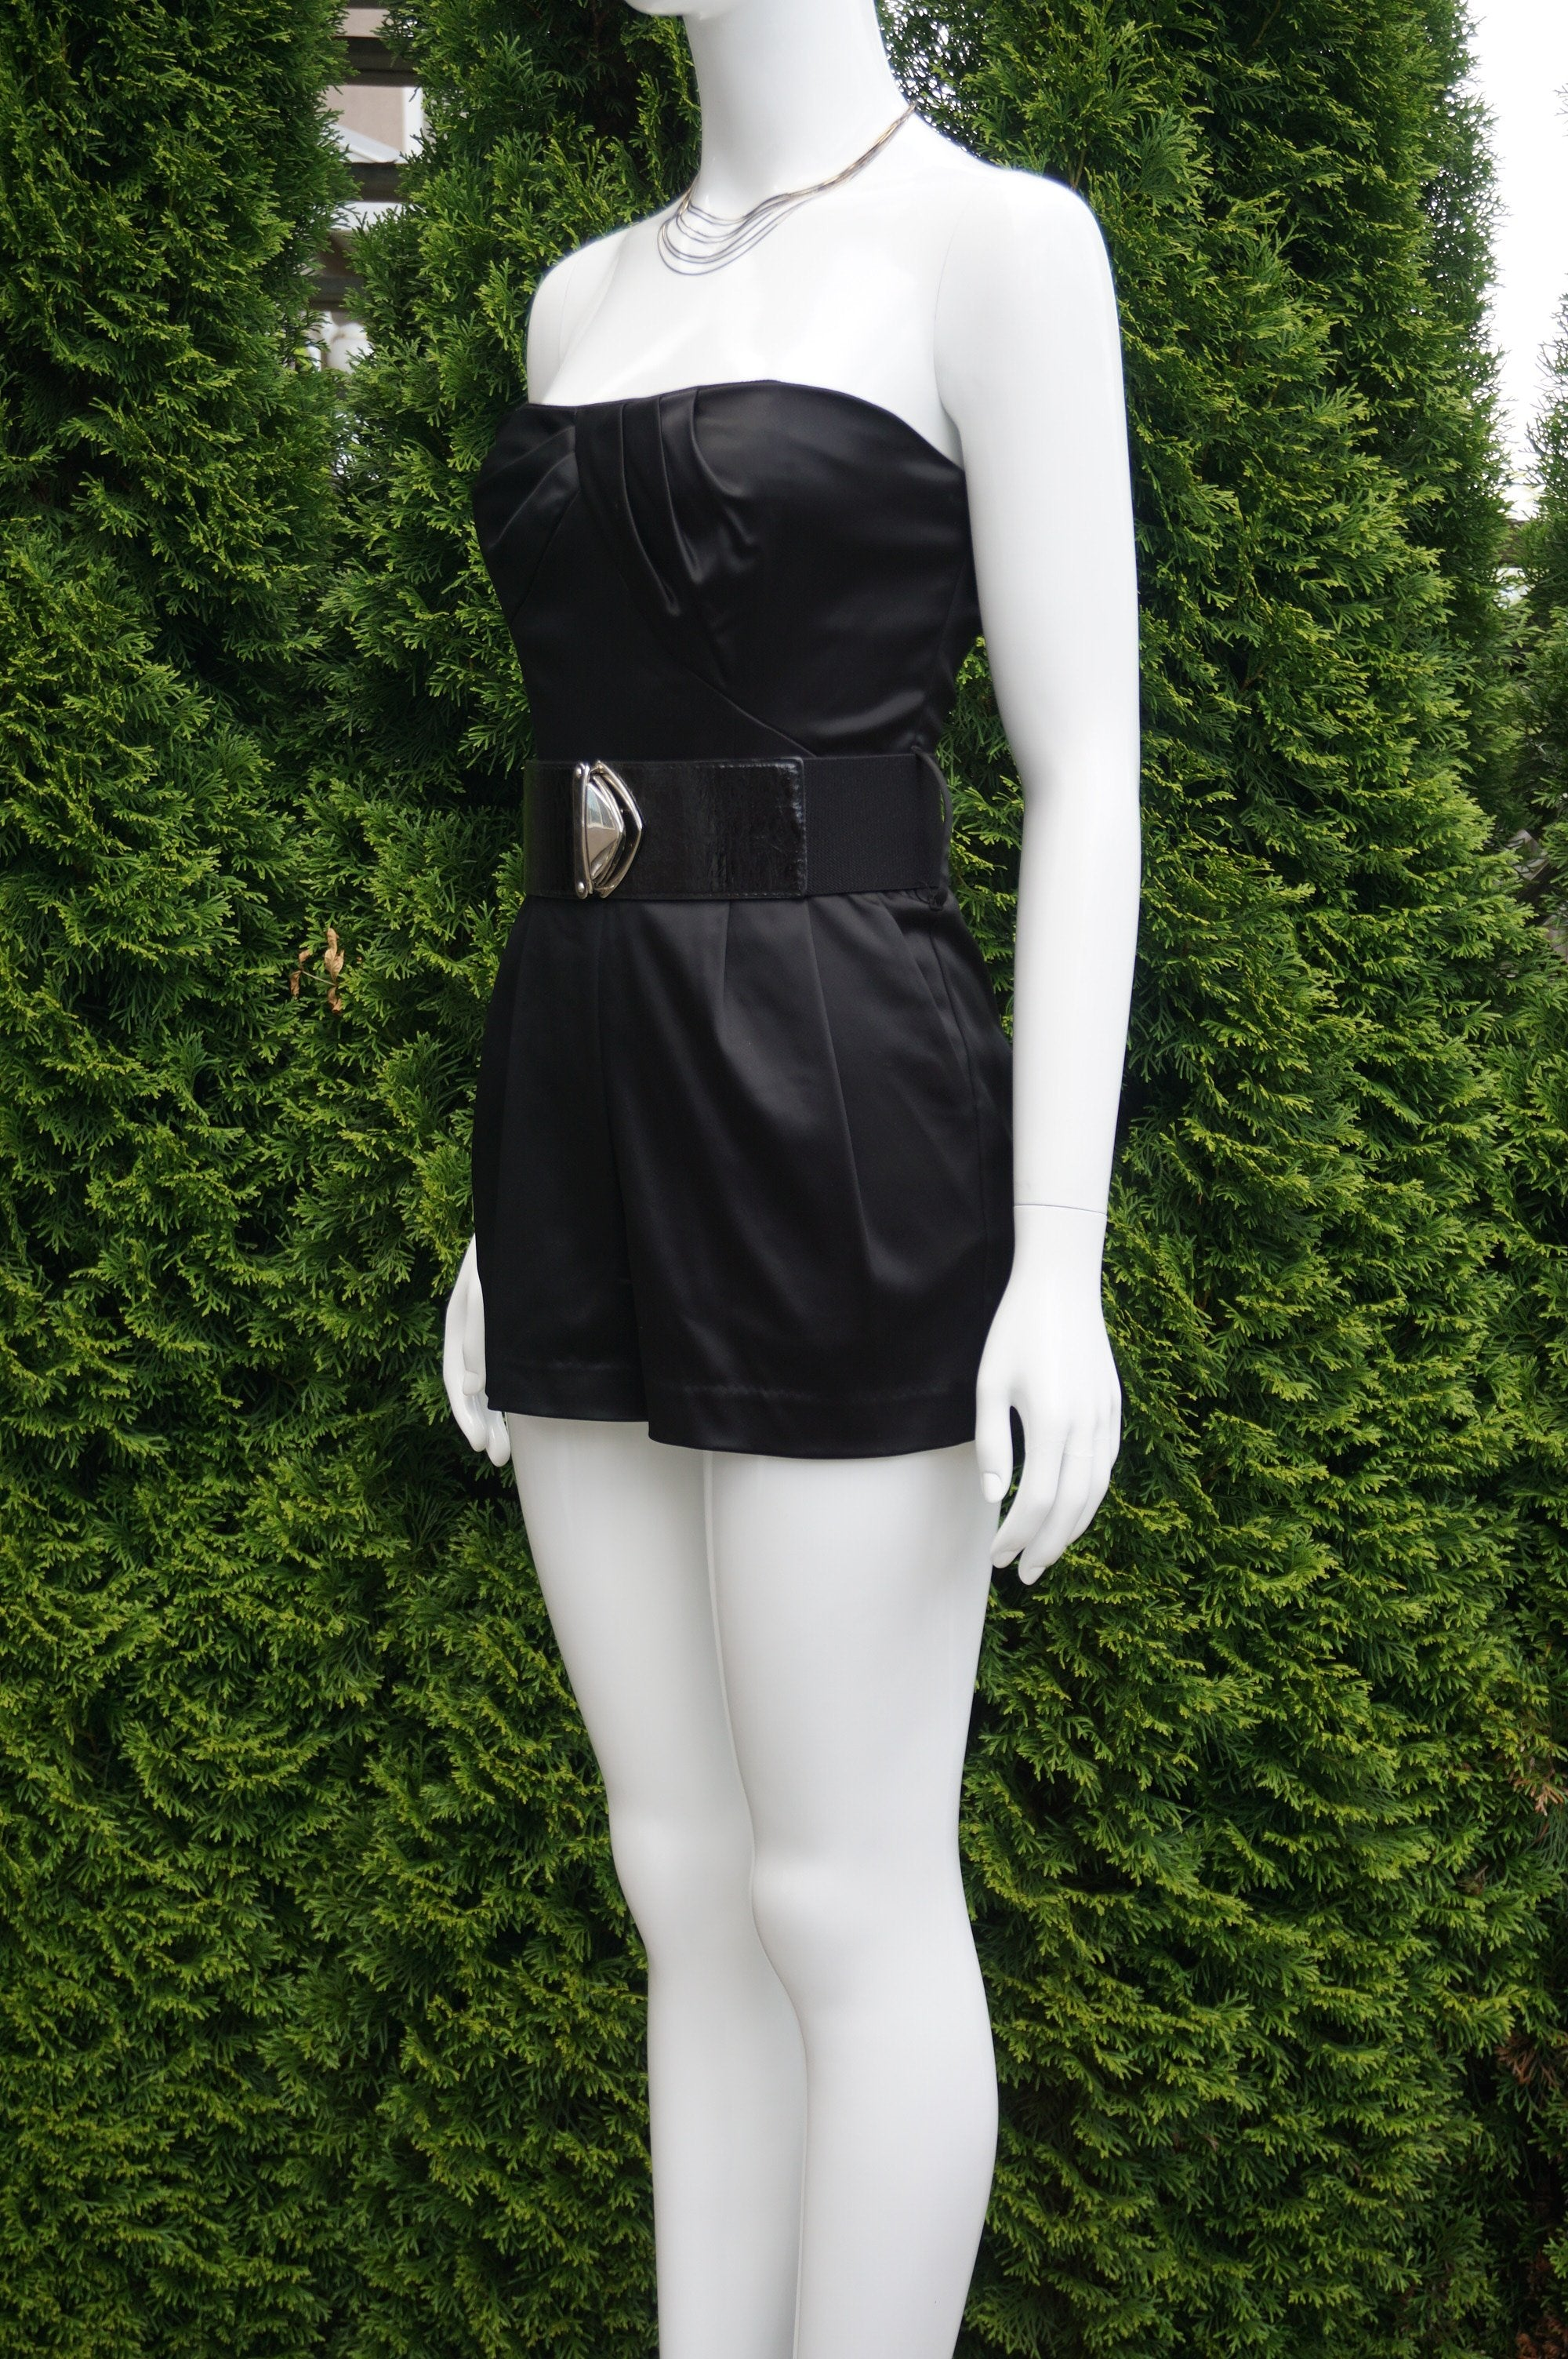 Bebe Strapless Heart Solid Black Mini Romper, This Super Stylish and Sexy Mini Romper helps you stand out in the crowd in concerts and night clubs. Complimentaty belt. Breast 31 inches, waist 25 inches, 22 inches length measured from top of breast., Black, Shell: 48% Acetate, 45% Polyamide, 7% Spandex. Lining: 95% polyester, 5% spandex, women's Dresses & Rompers, women's Black Dresses & Rompers, Bebe women's Dresses & Rompers, Solid Black Jumpsuit, Solid Black Mini Romper, Tube Strapless mini romper